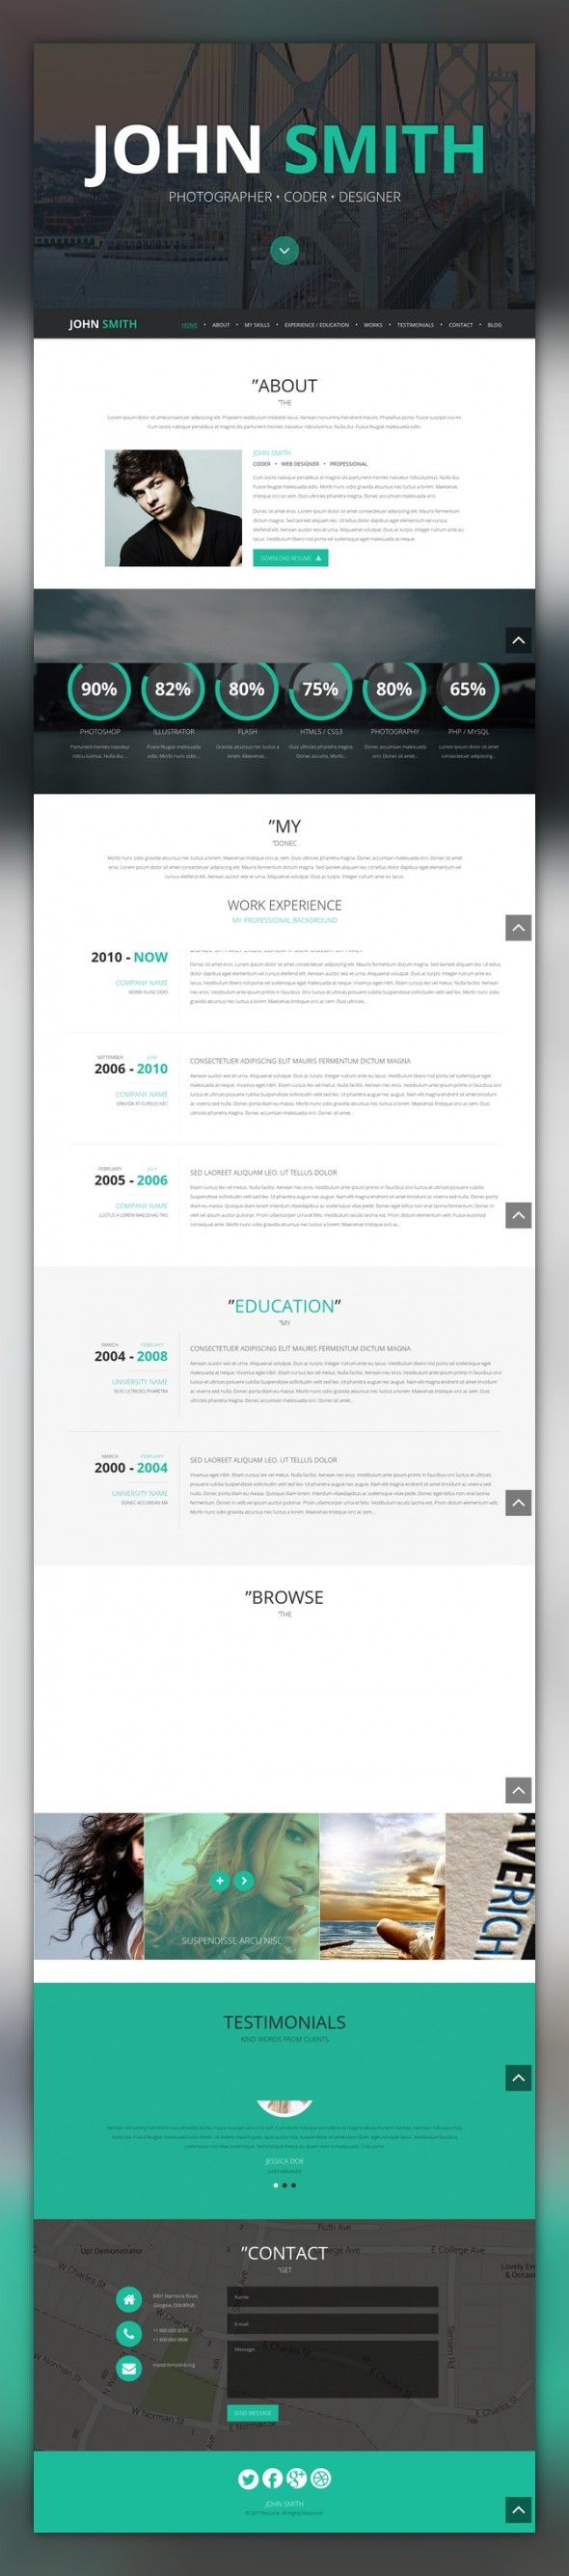 Online CV WordPress Theme CMS & Blog Templates, WordPress Themes, Society & People, Personal Page Templates